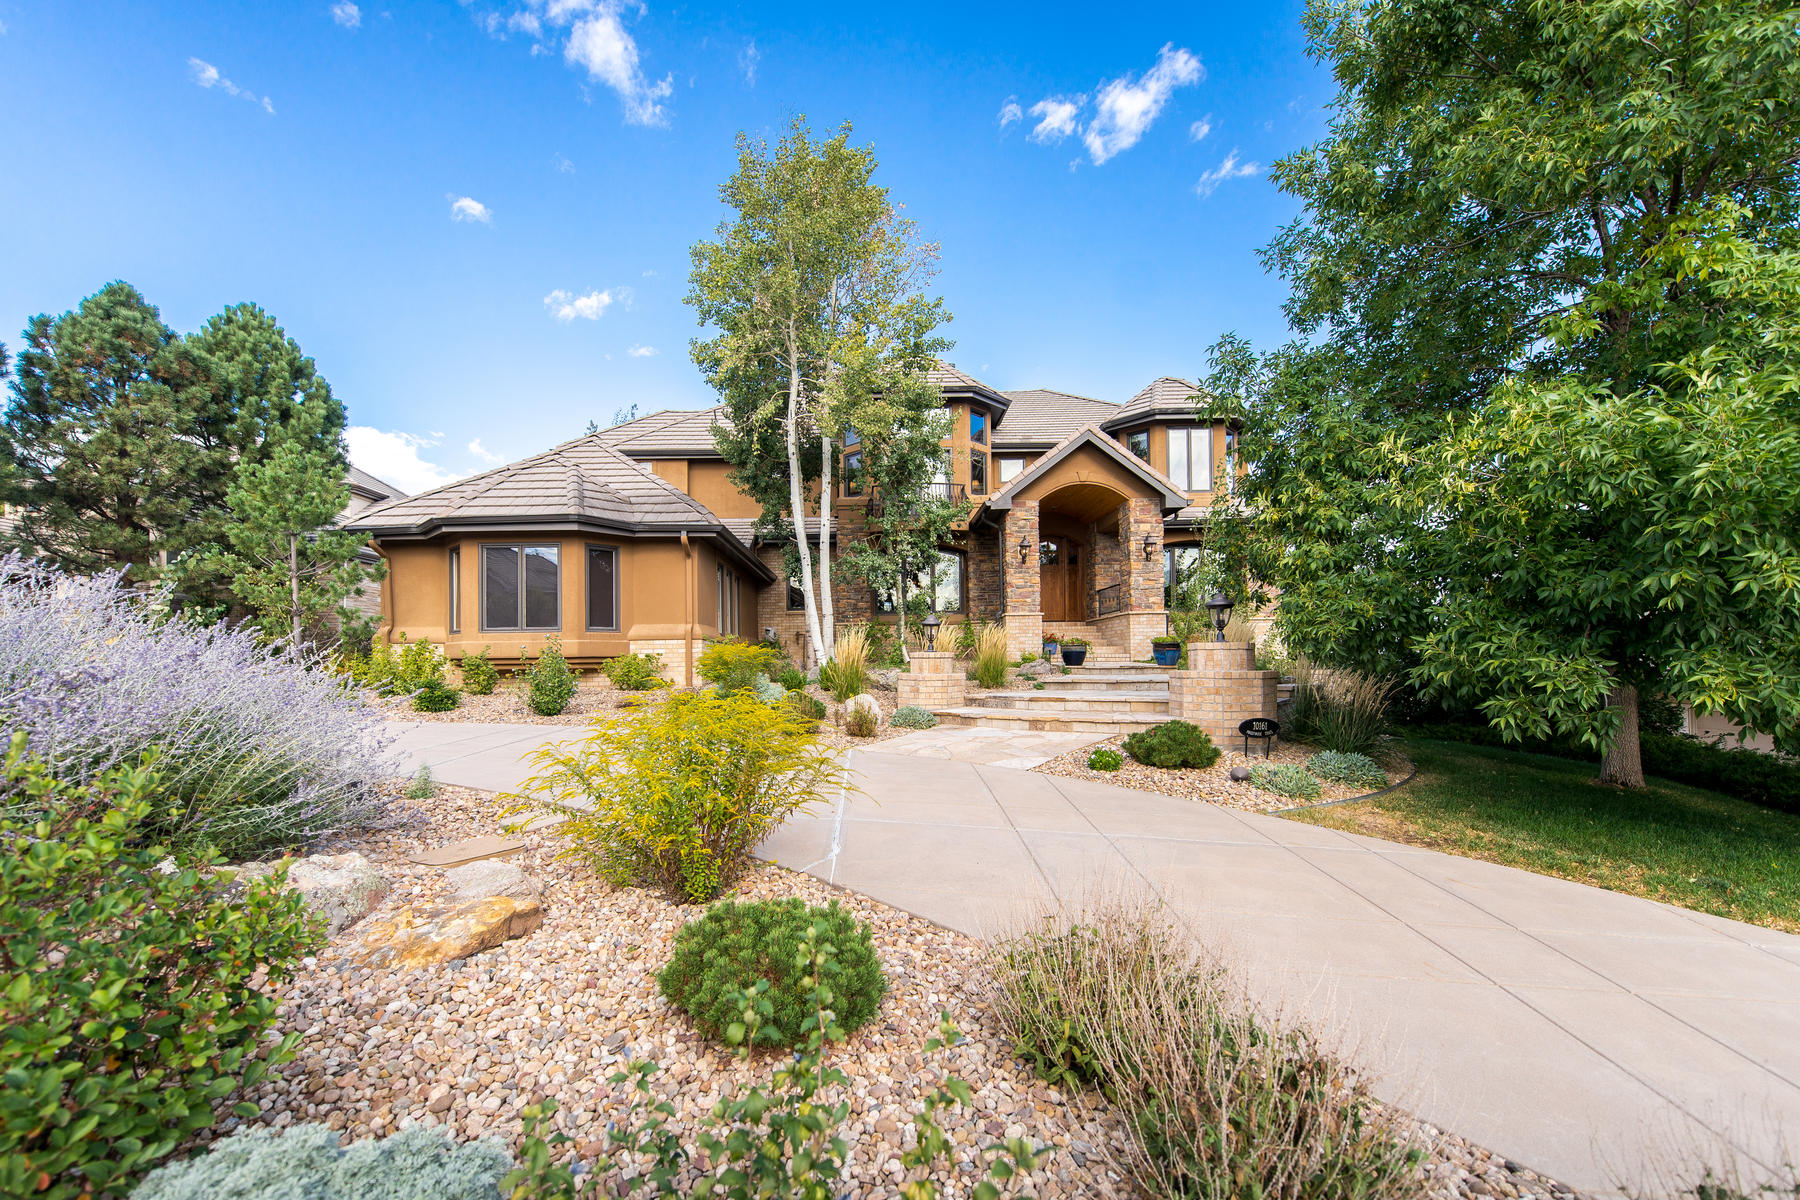 Single Family Home for Active at Heritage Estates 10161 Prestwick Trail Lone Tree, Colorado 80124 United States